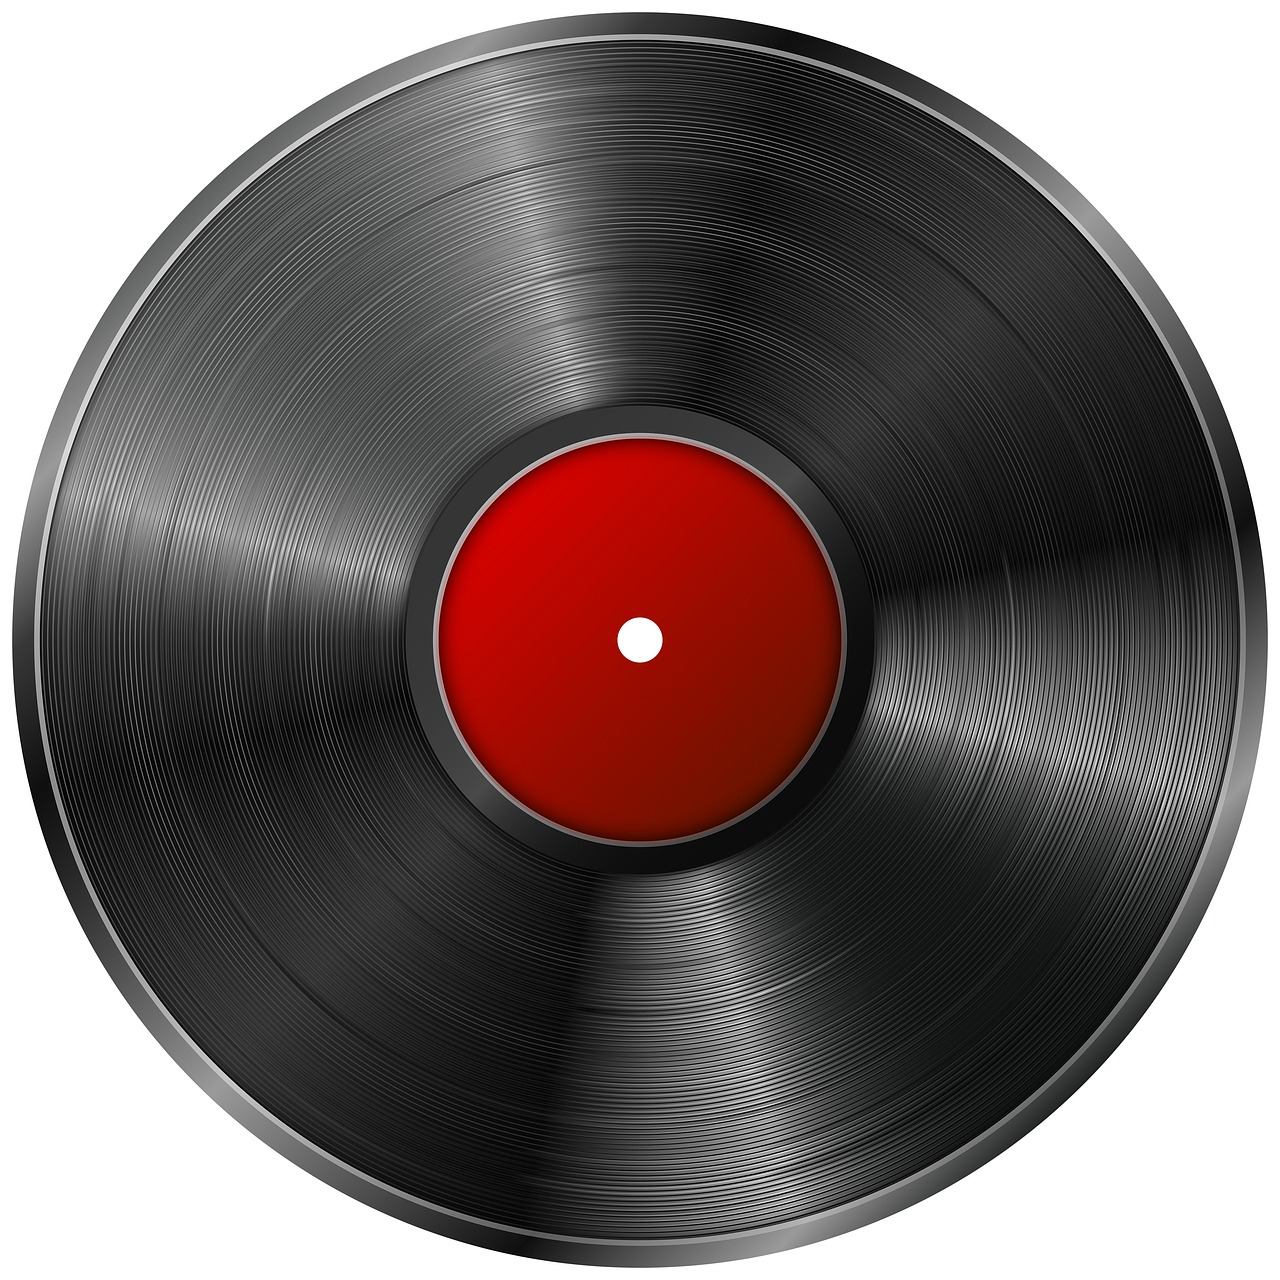 vinyl record with red center